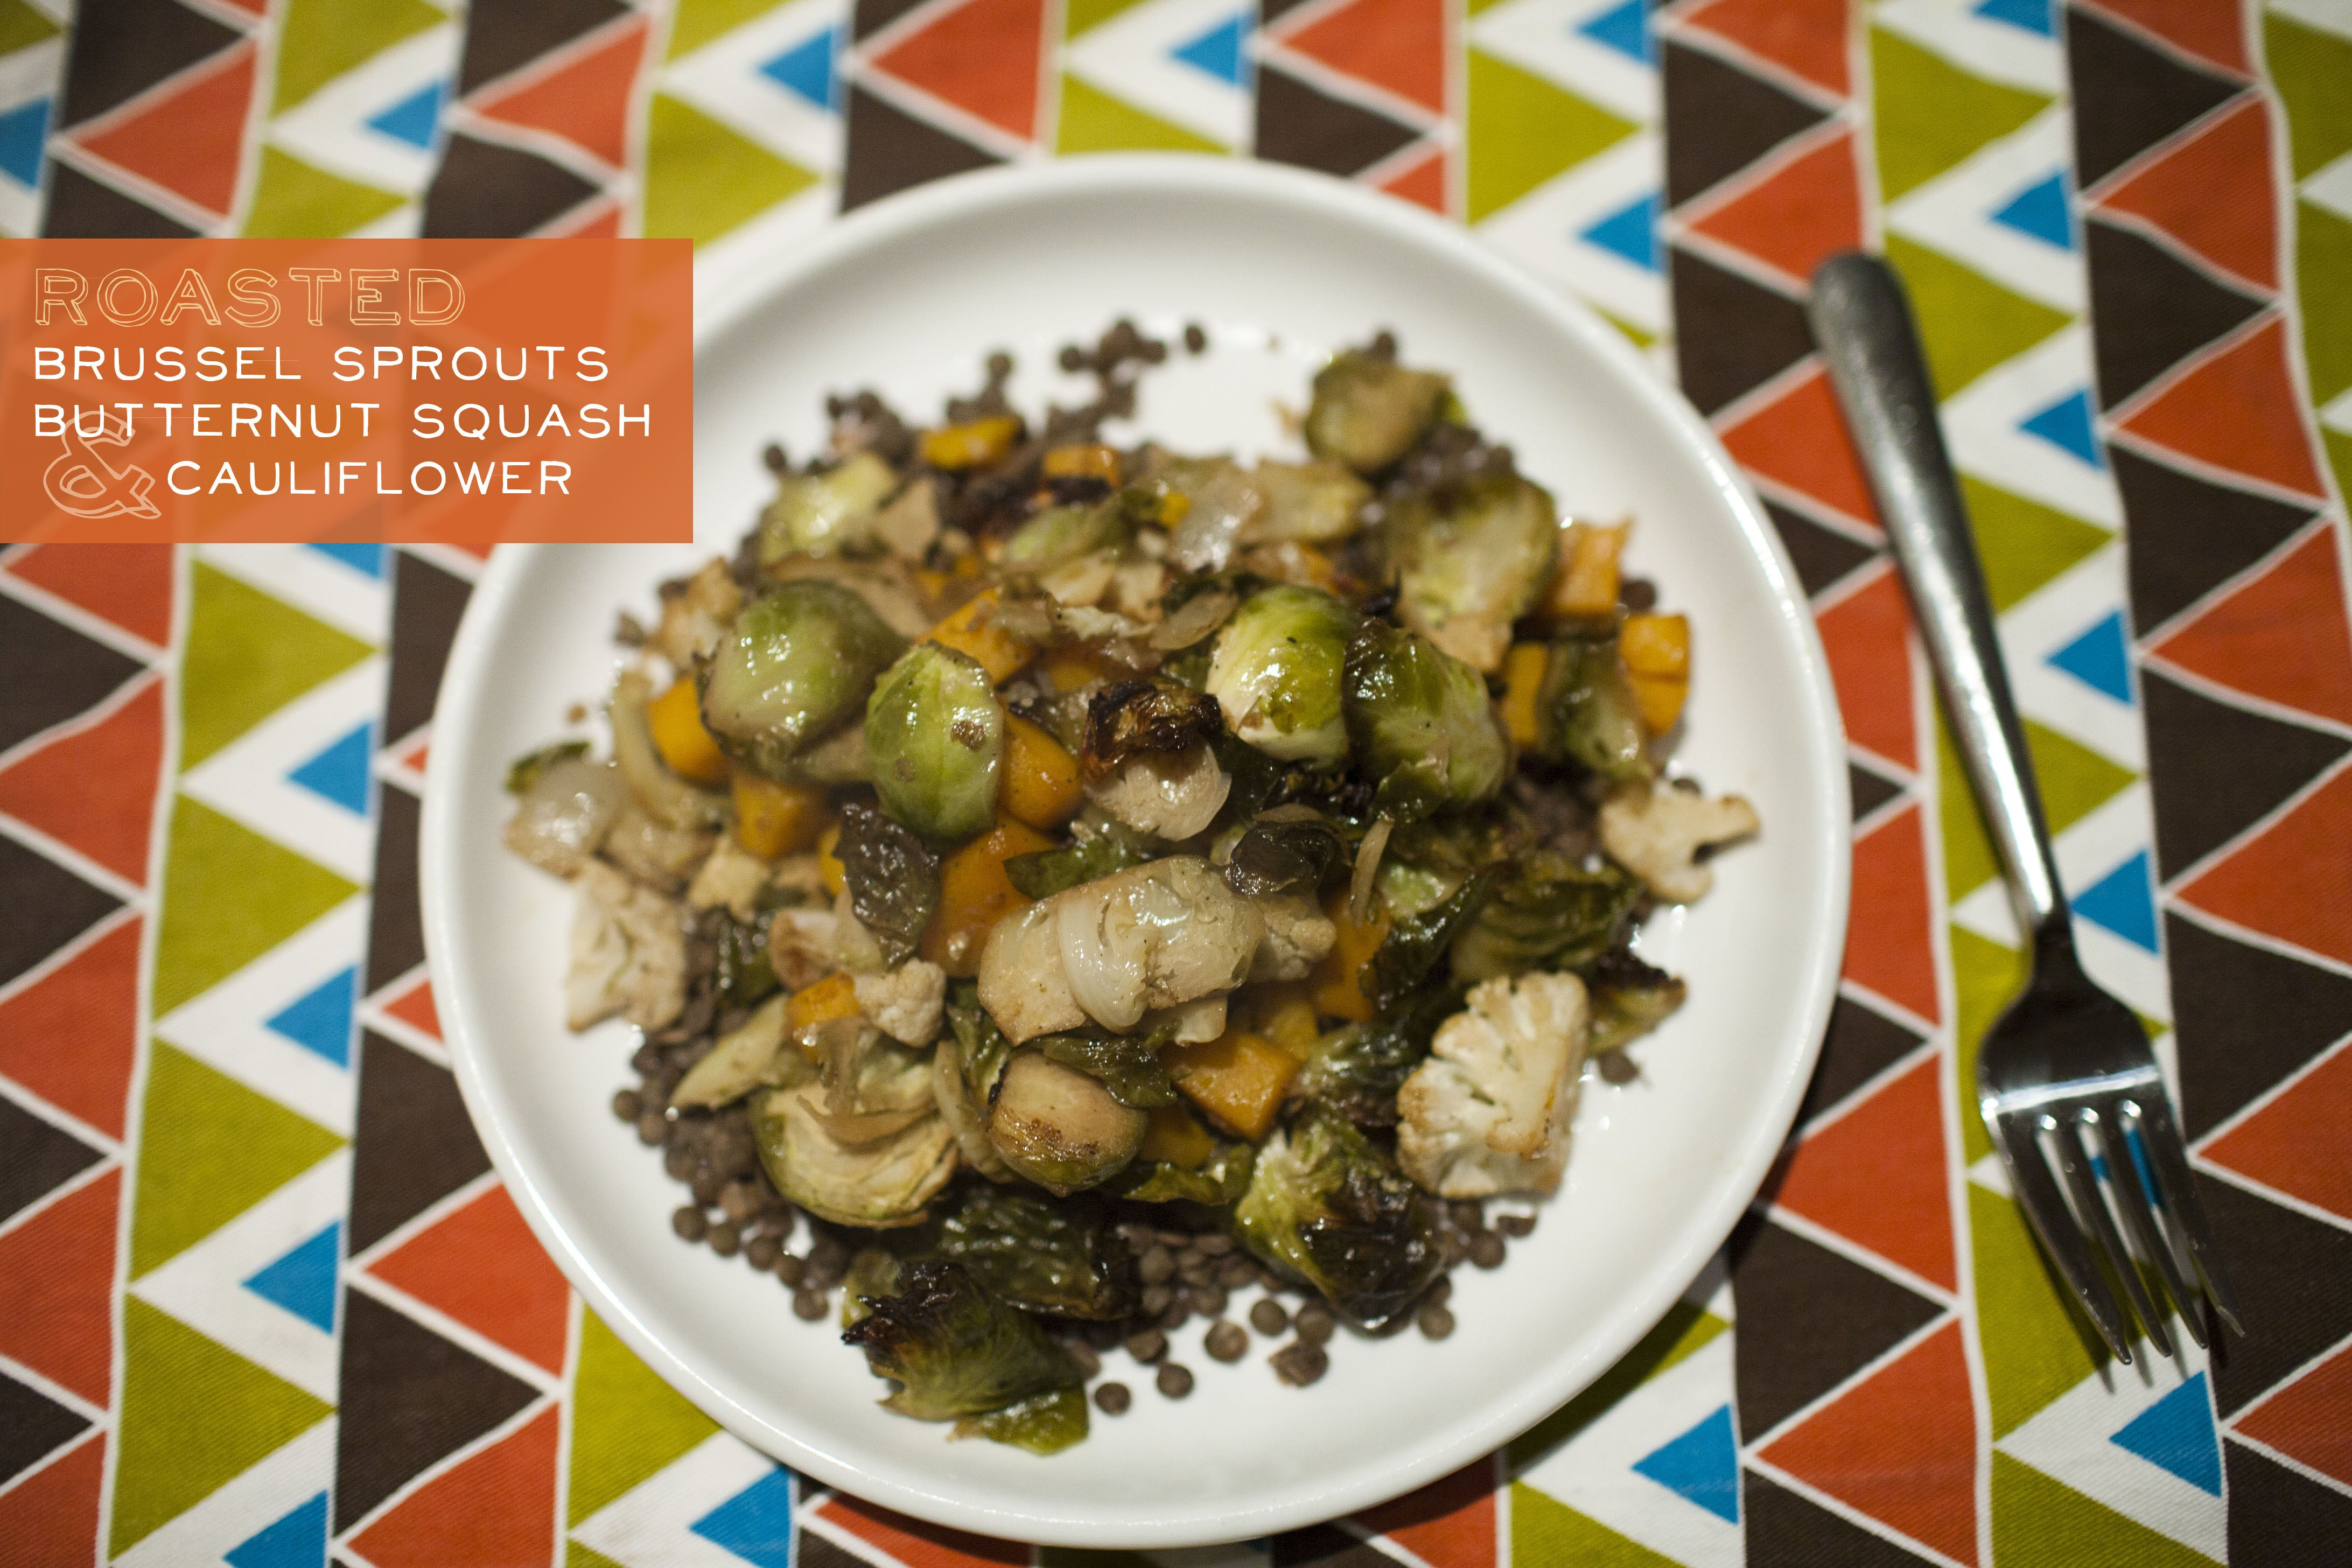 Roasted brussel sprouts, butternut squash, cauliflower